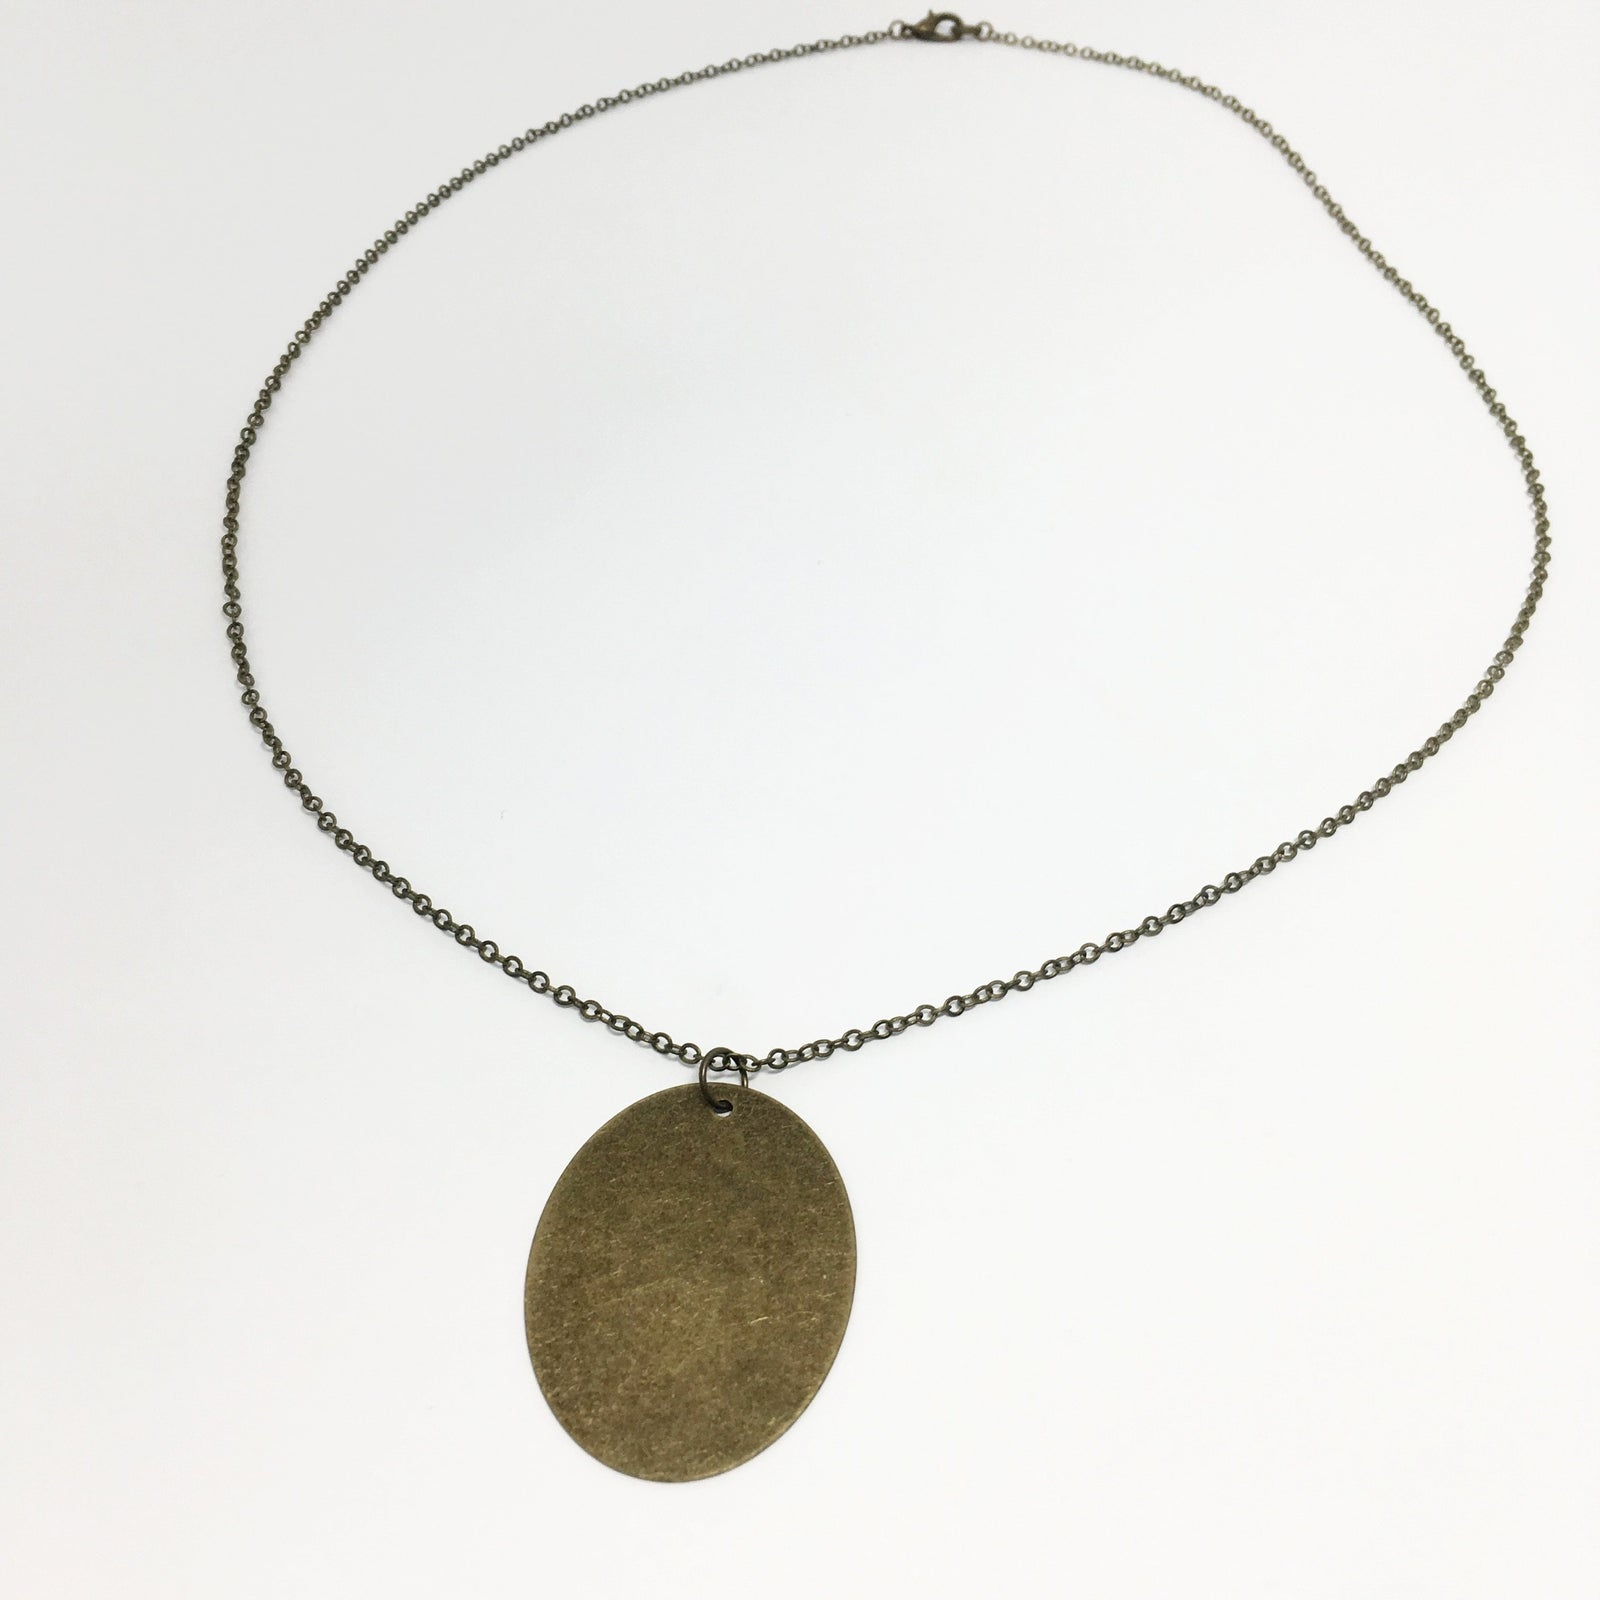 OVAL BRONZE DISK NECKLACE